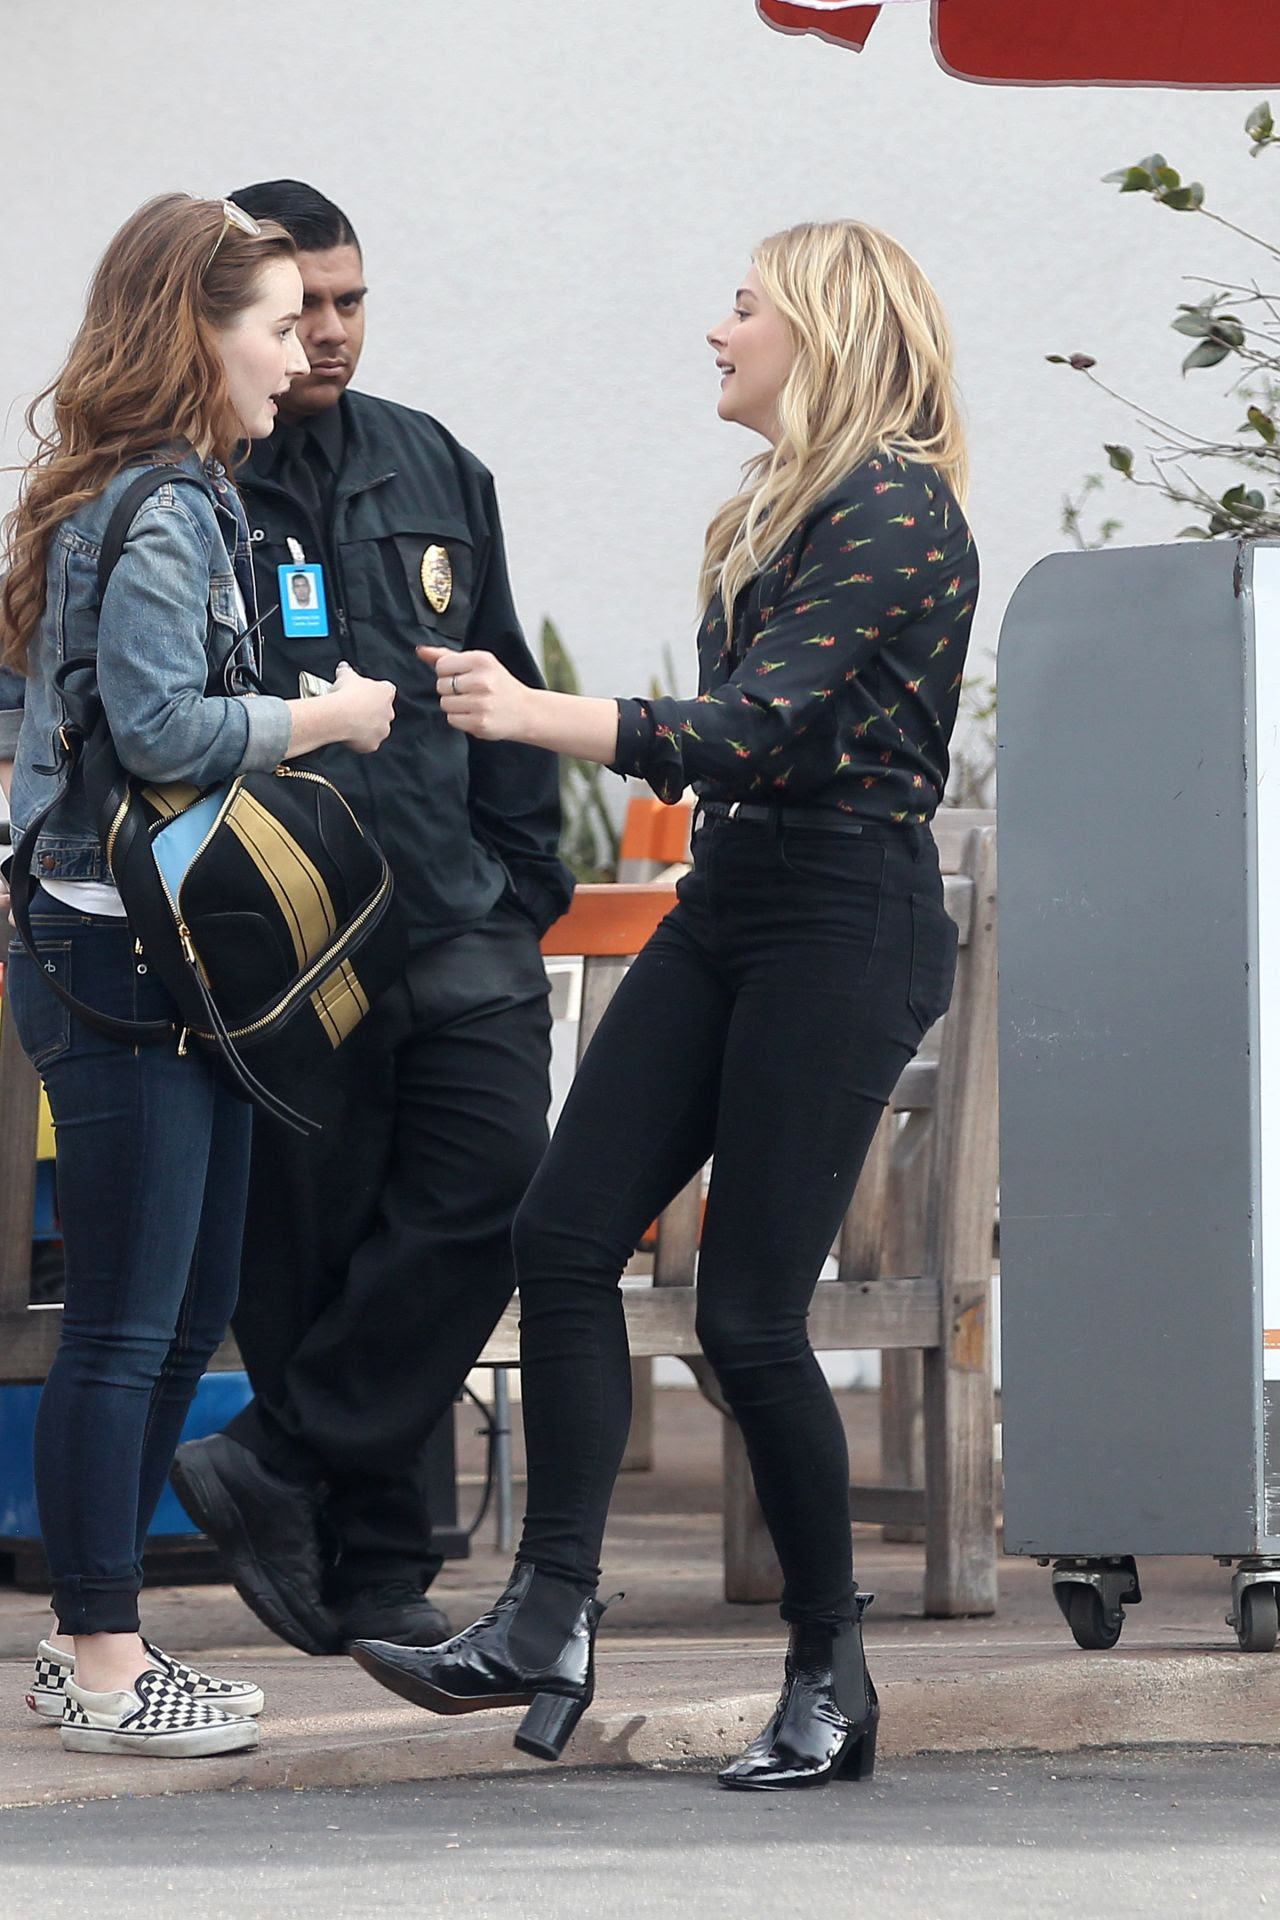 http://celebmafia.com/wp-content/uploads/2016/01/chloe-moretz-at-the-glen-centre-in-los-angeles-ca-1-27-2016-5.jpg